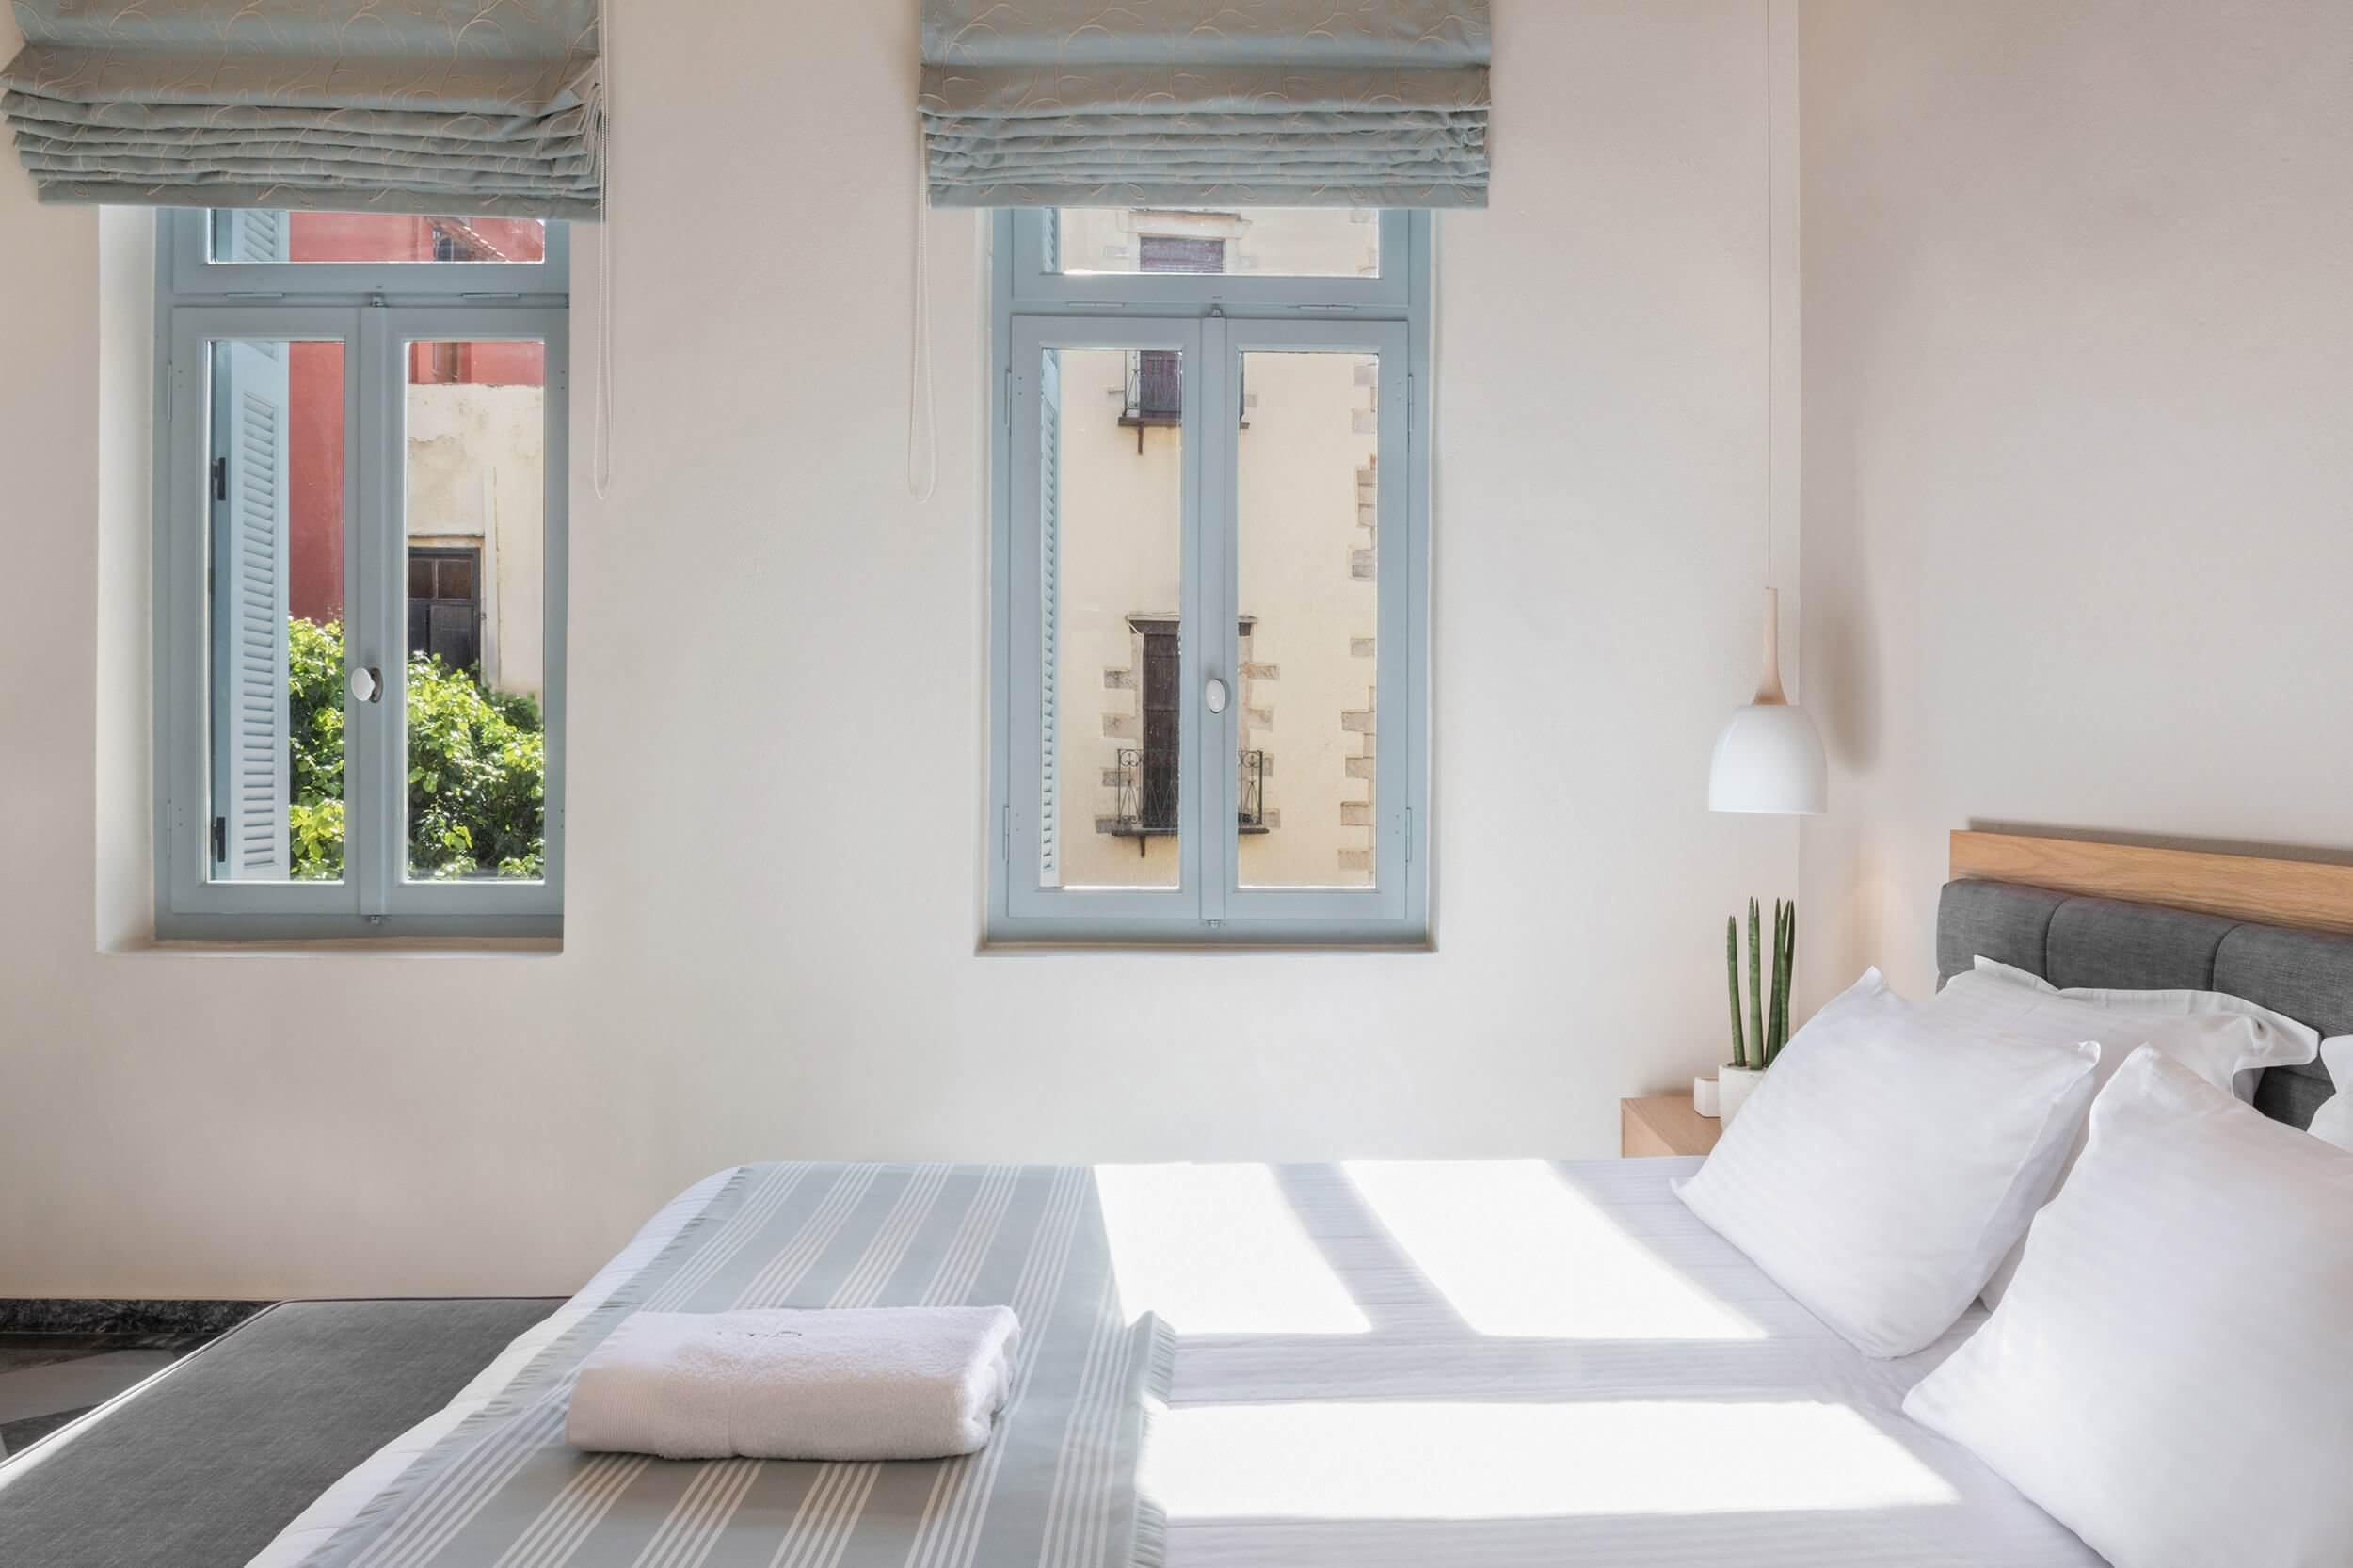 Hotel Off Chania Deluxe Gardenview Windows 1